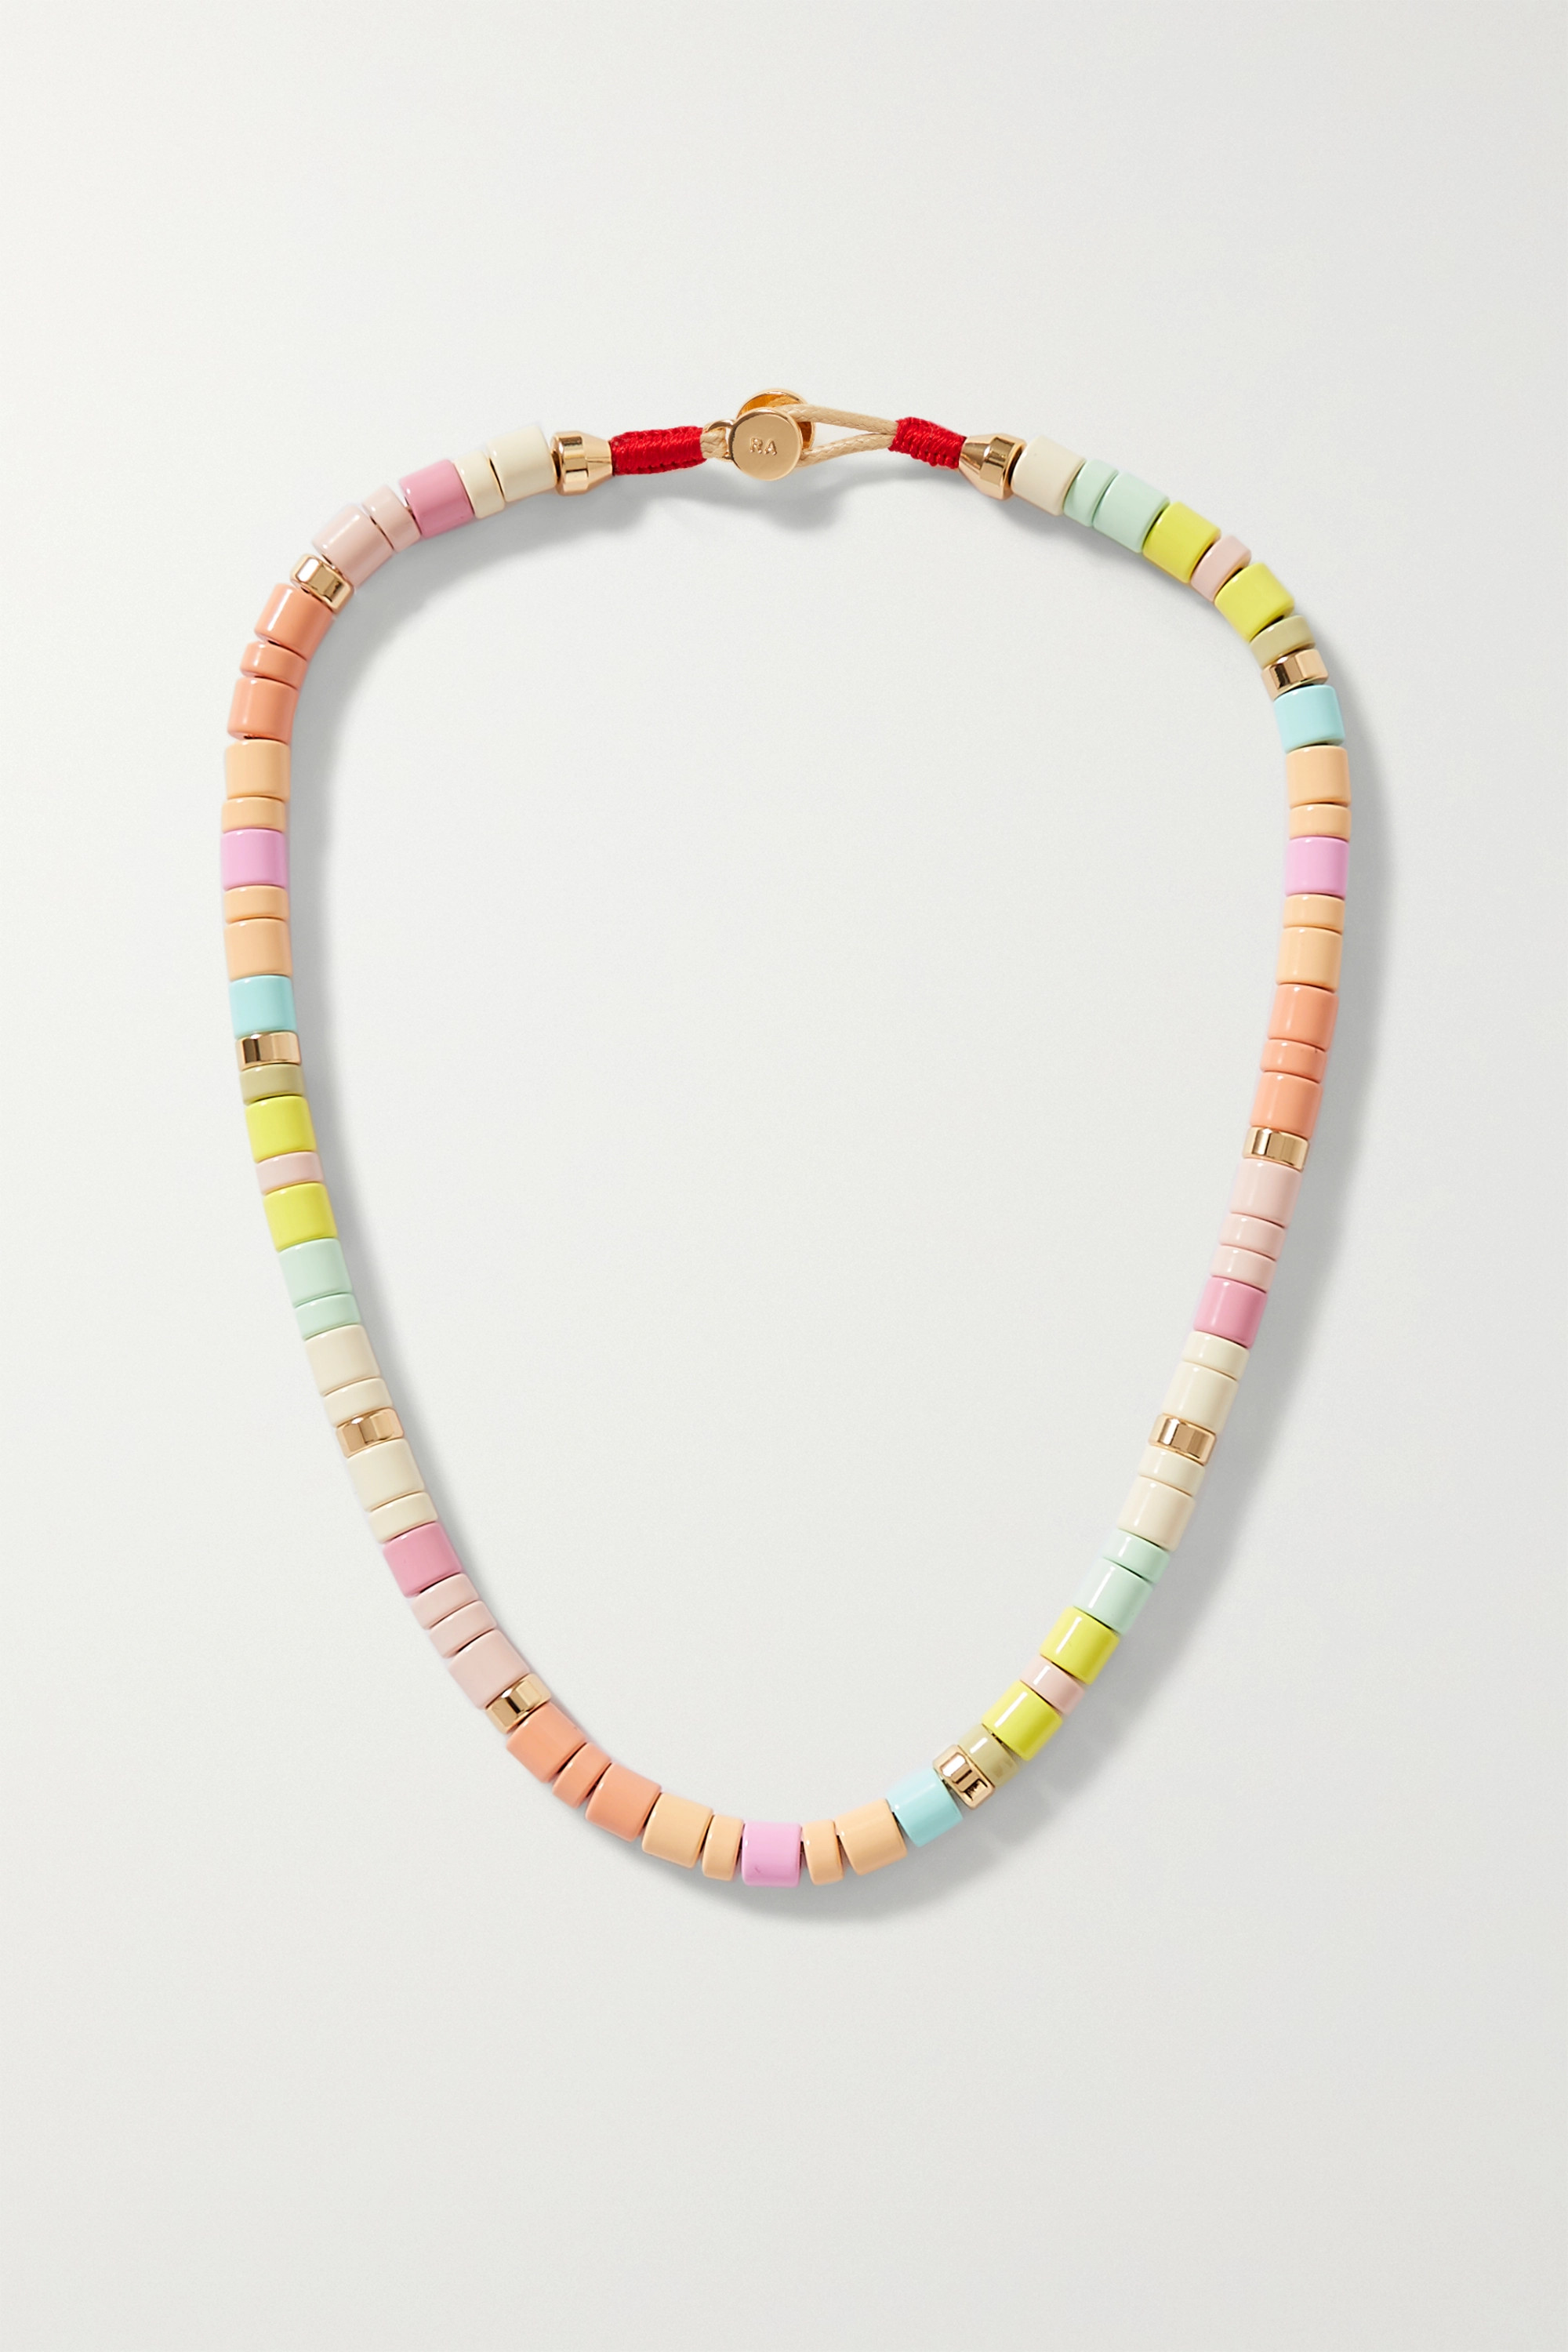 Roxanne Assoulin Soft Serve enamel and gold-tone necklace